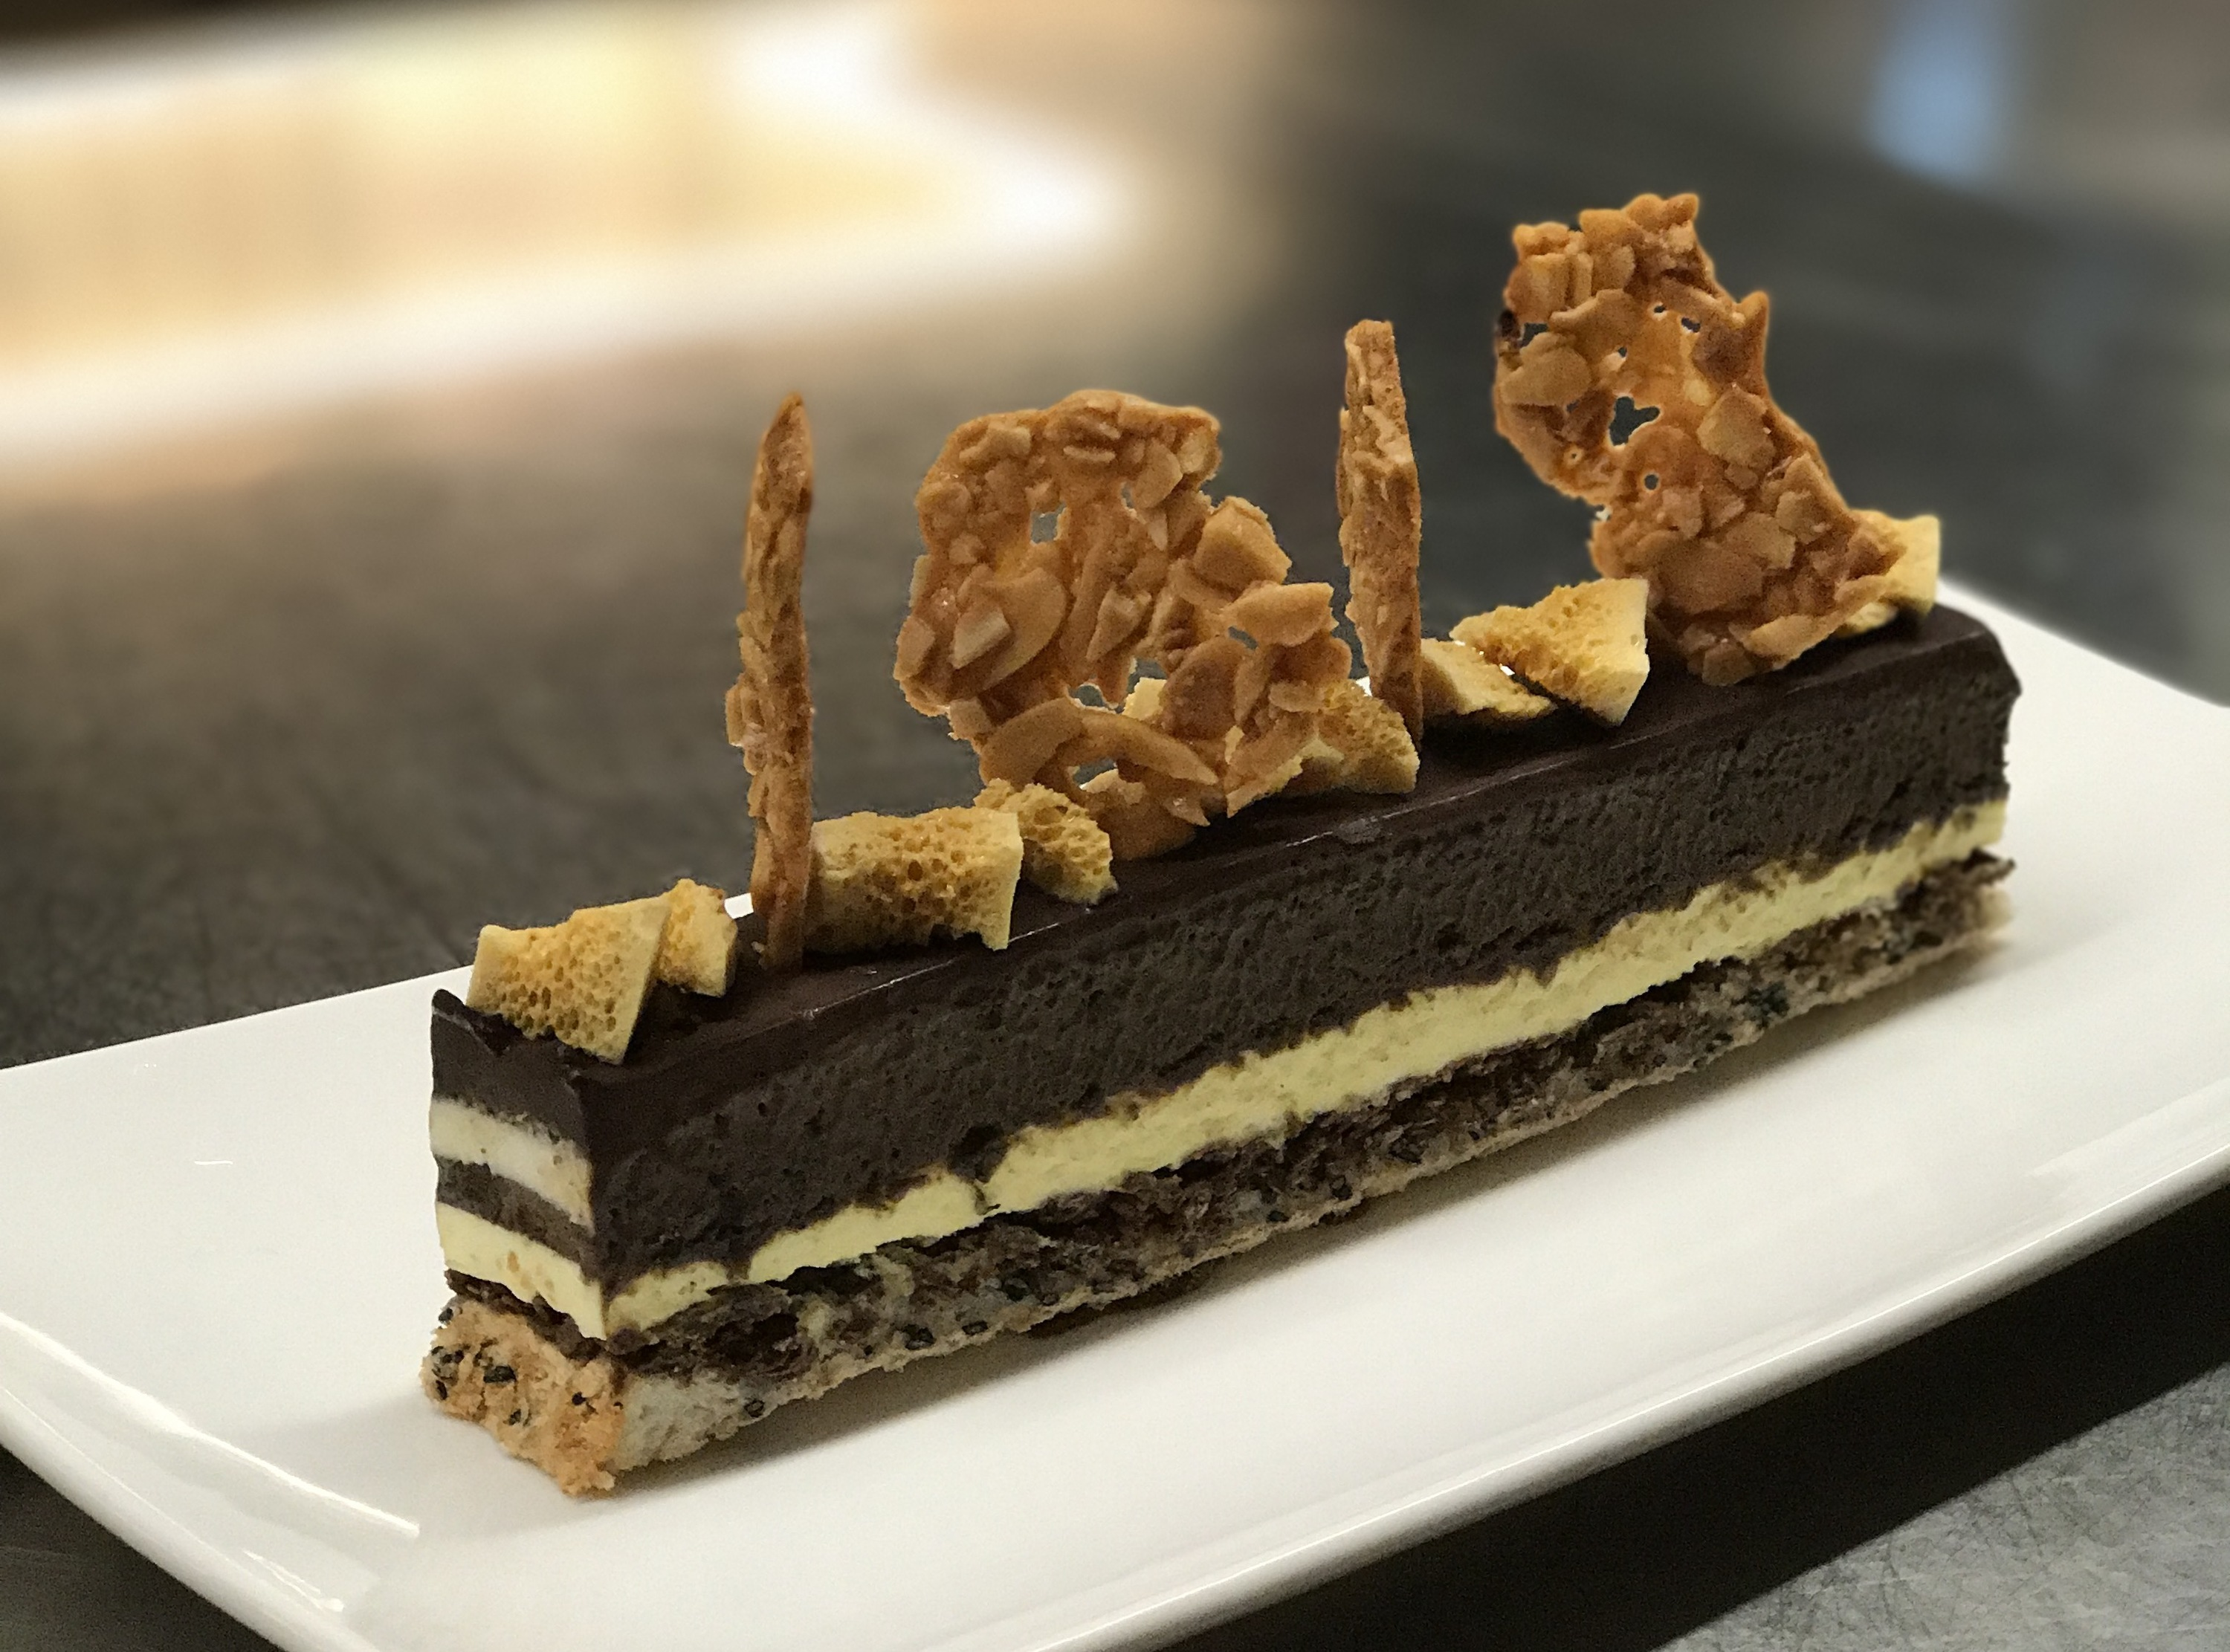 Tahini chocolate mousse with honeycomb and peanut tuiles from Foo Foo Fine Desserts